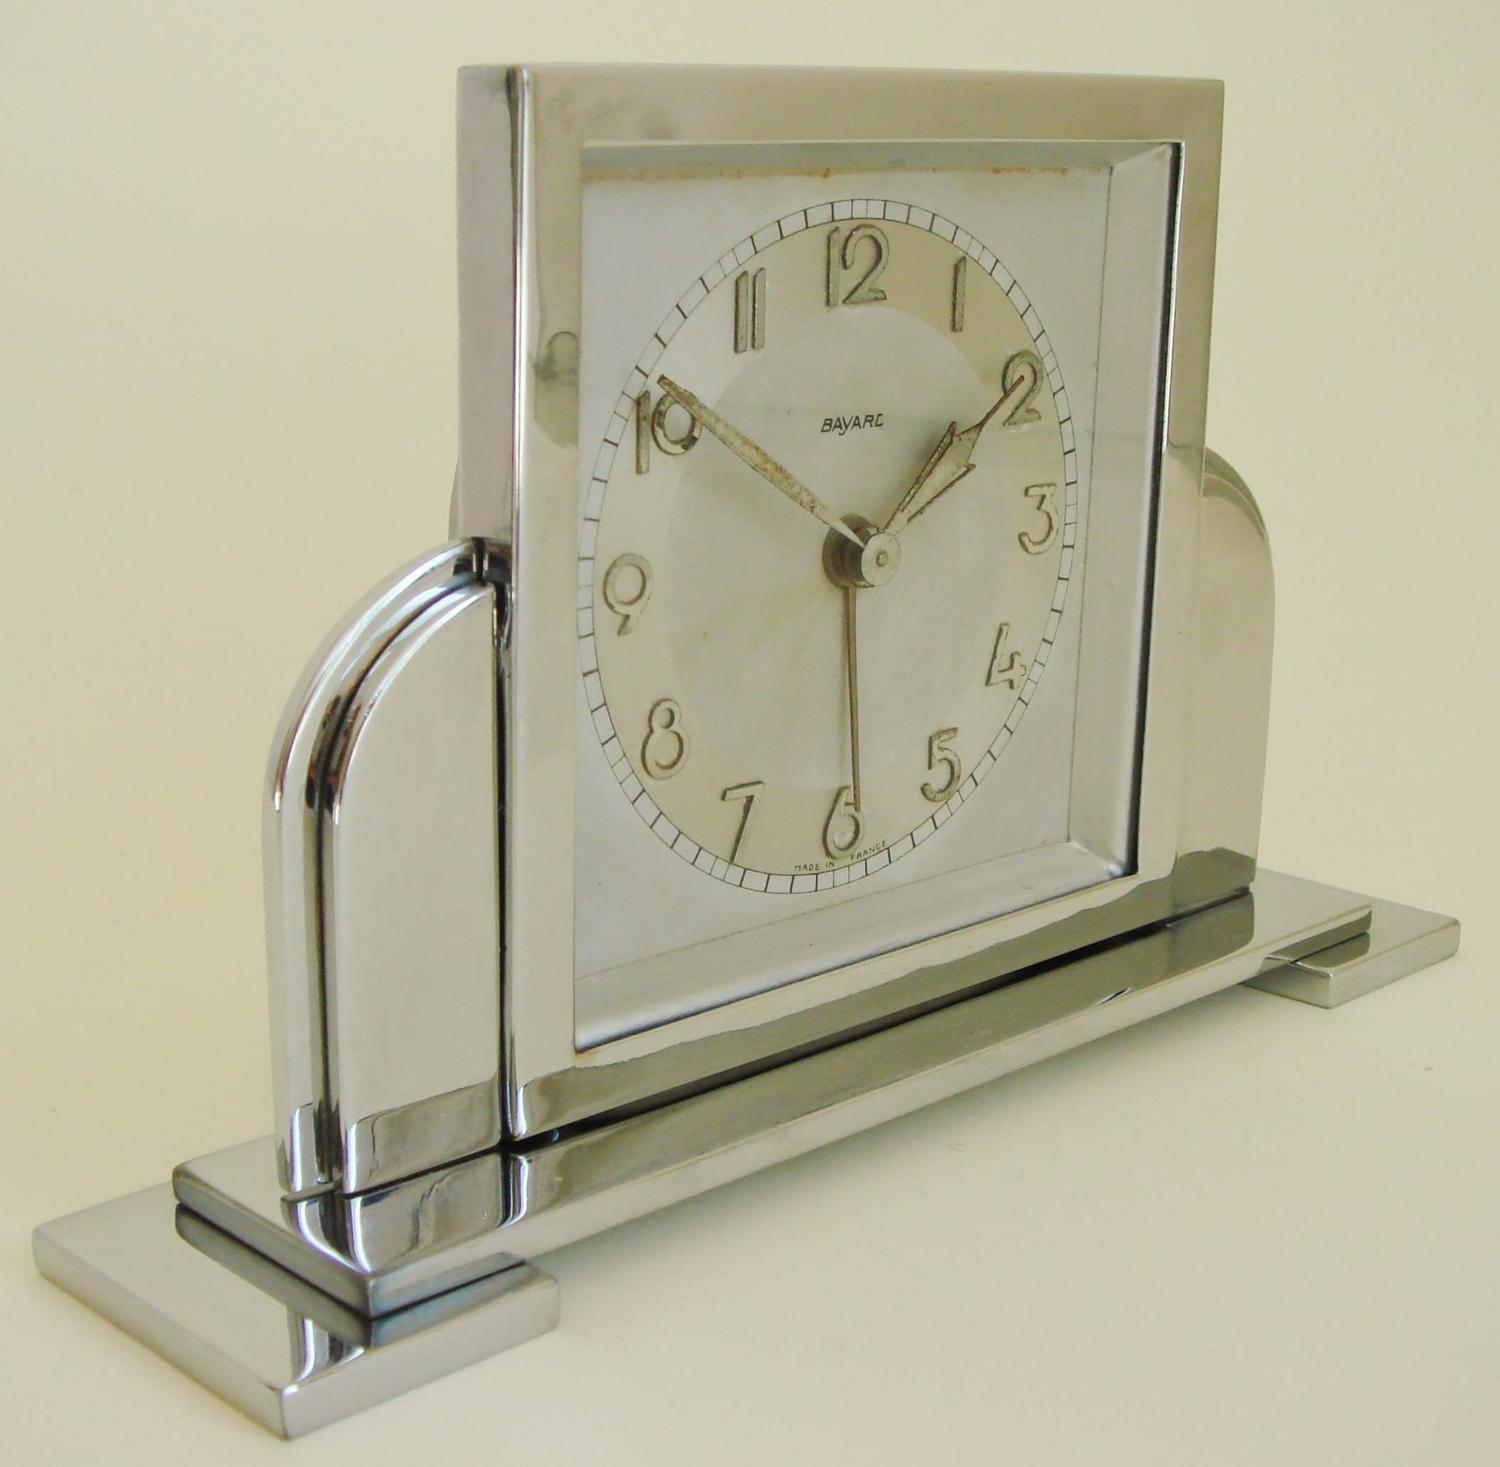 French art deco chrome mechanical architectural alarm Art deco alarm clocks